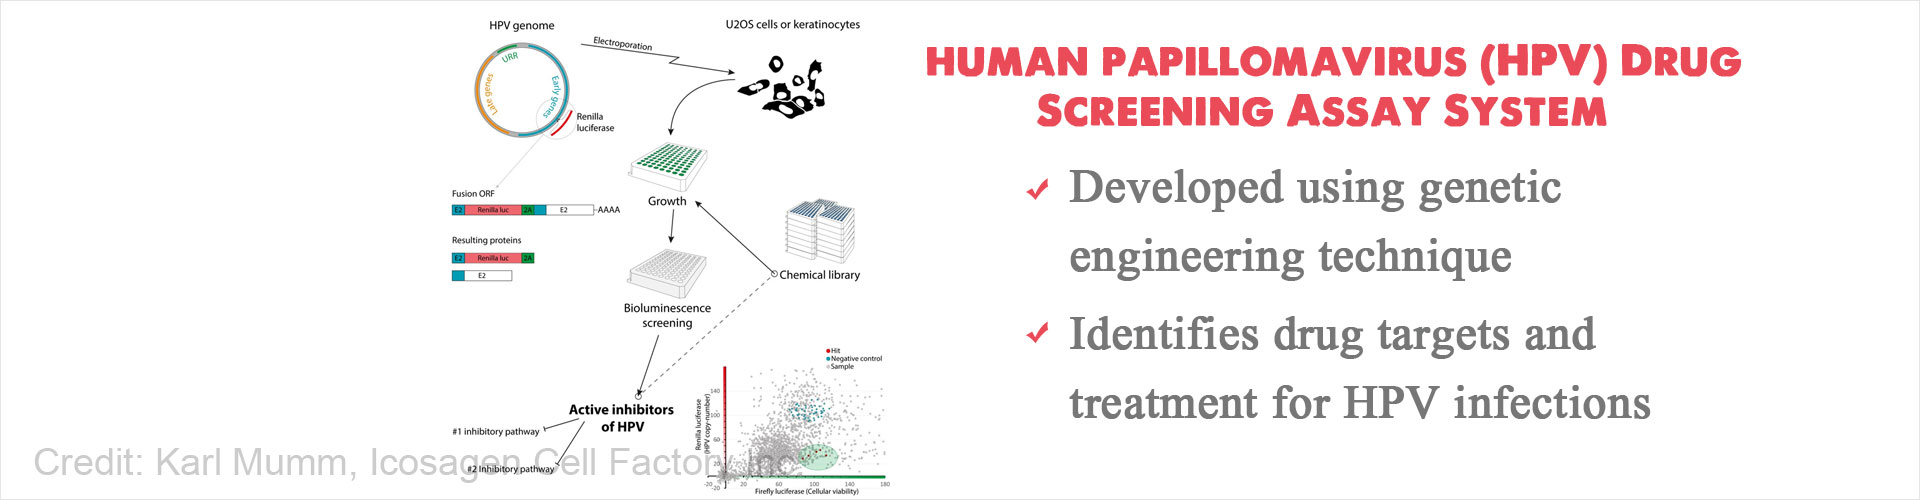 hight resolution of new screening system to identify potential drug targets and treatment for human papillomavirus hpv